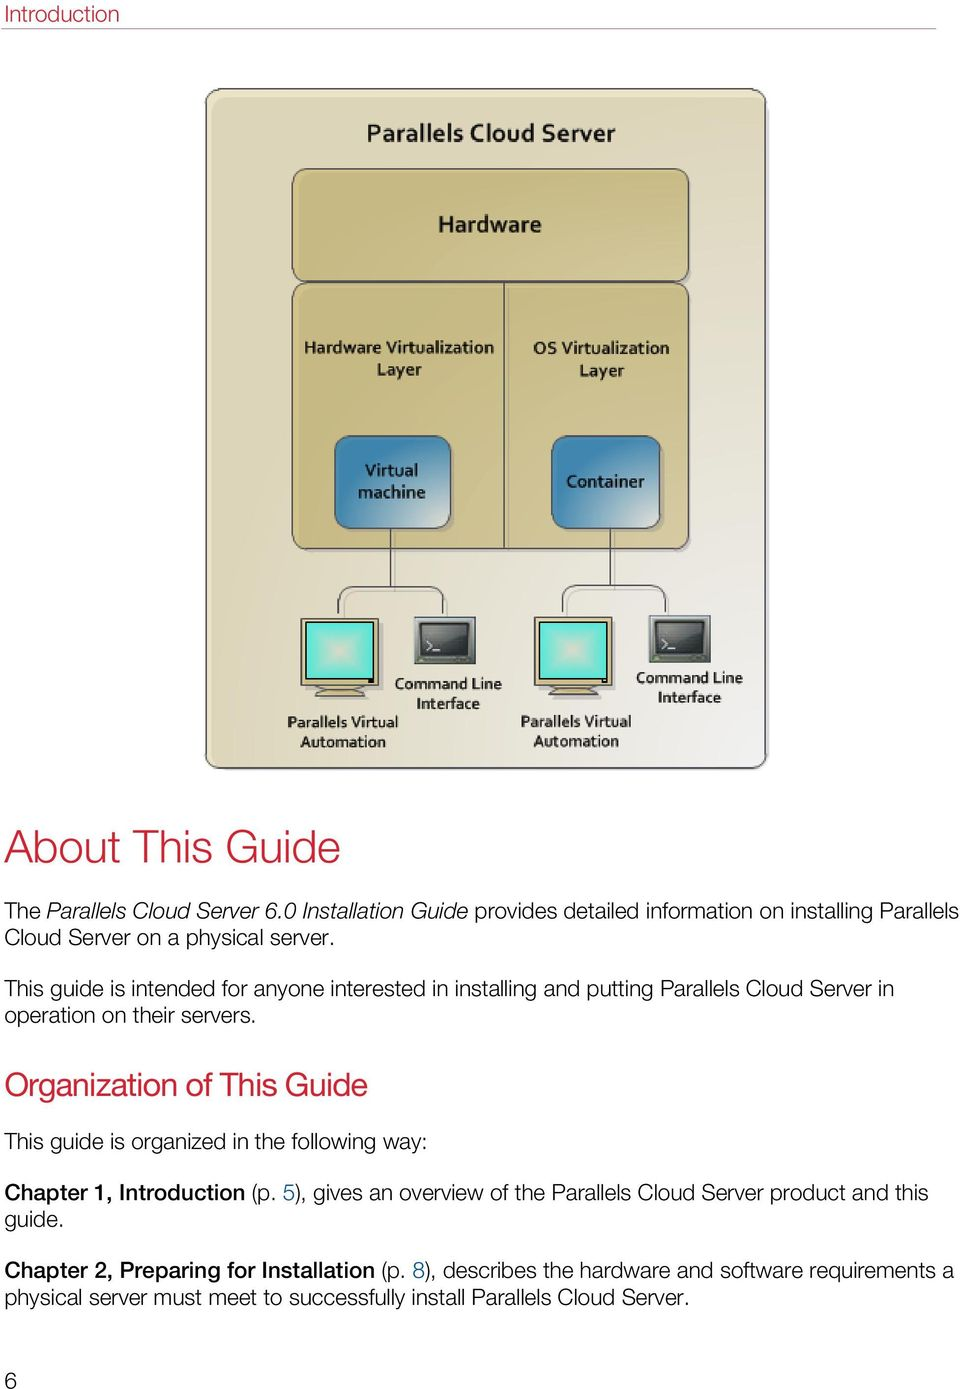 This guide is intended for anyone interested in installing and putting Parallels Cloud Server in operation on their servers.